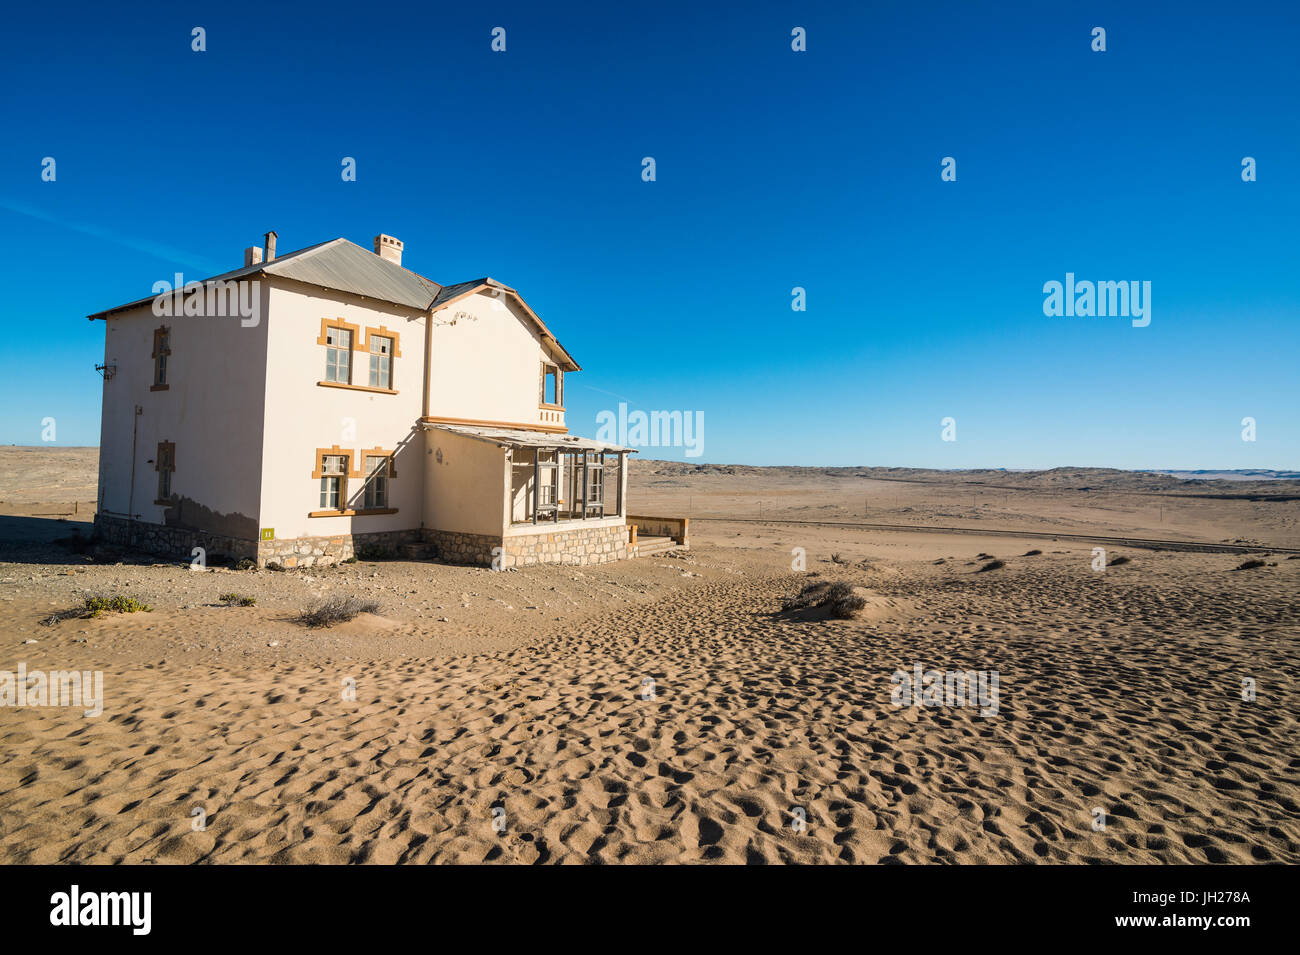 Colonial house, old diamond ghost town, Kolmanskop (Coleman's Hill), near Luderitz, Namibia, Africa - Stock Image